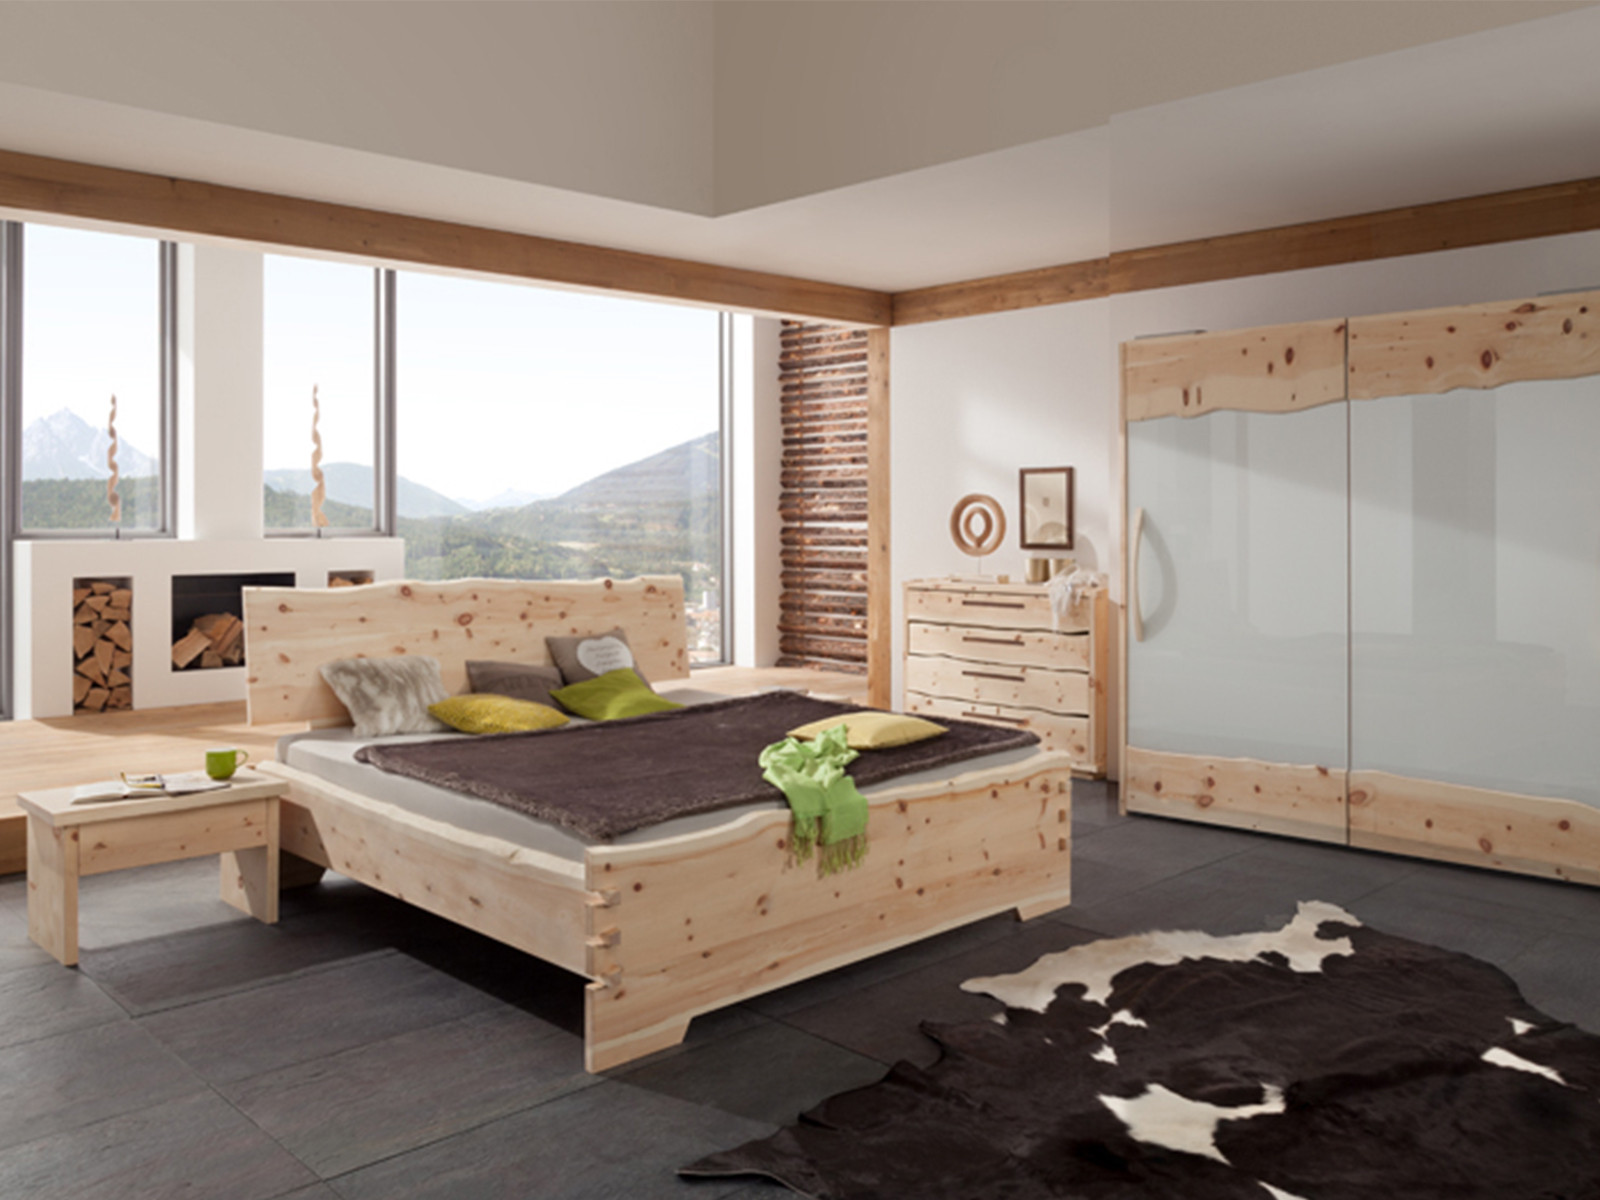 schlafzimmer farbgestaltung bilder. Black Bedroom Furniture Sets. Home Design Ideas